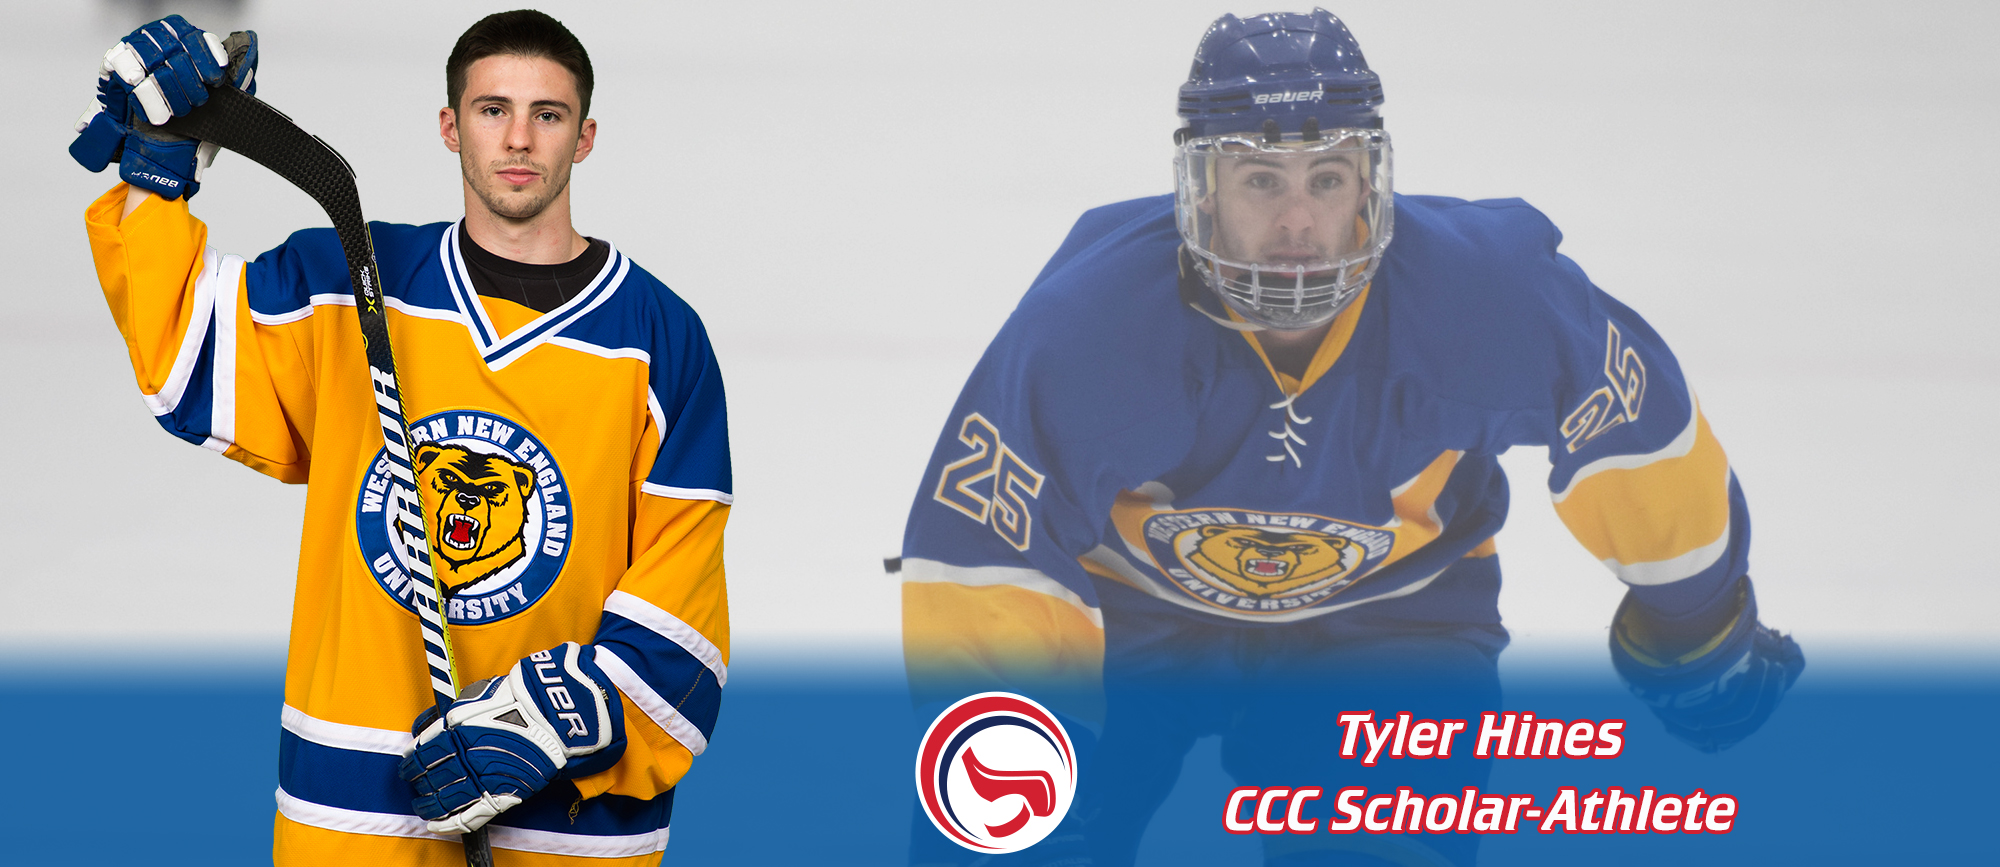 Tyler Hines Receives CCC Scholar-Athlete Recognition